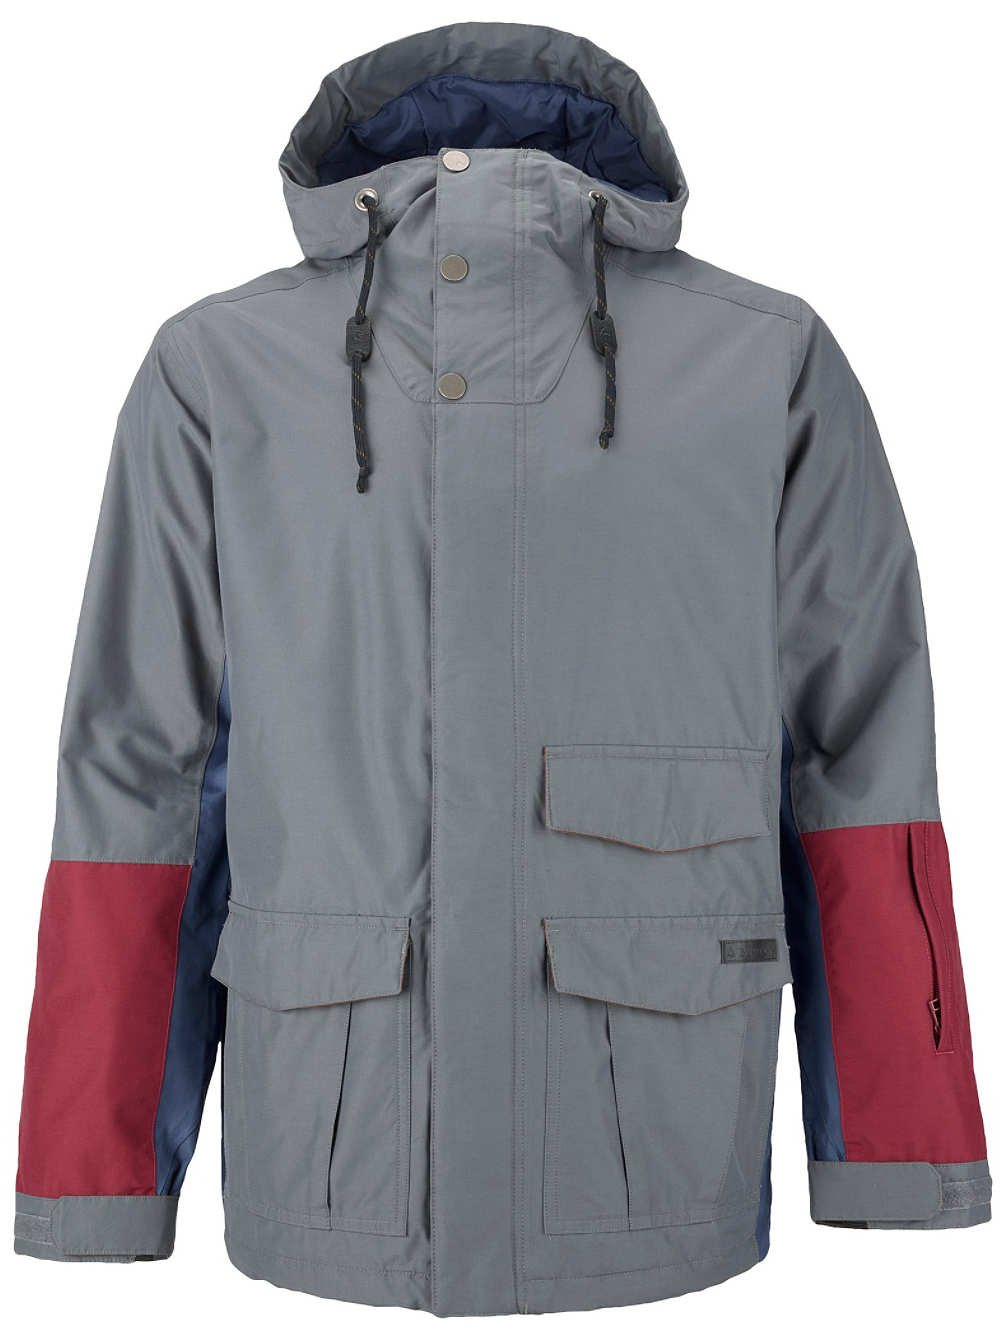 Northfield Jacket bog/team blue/crimson günstig